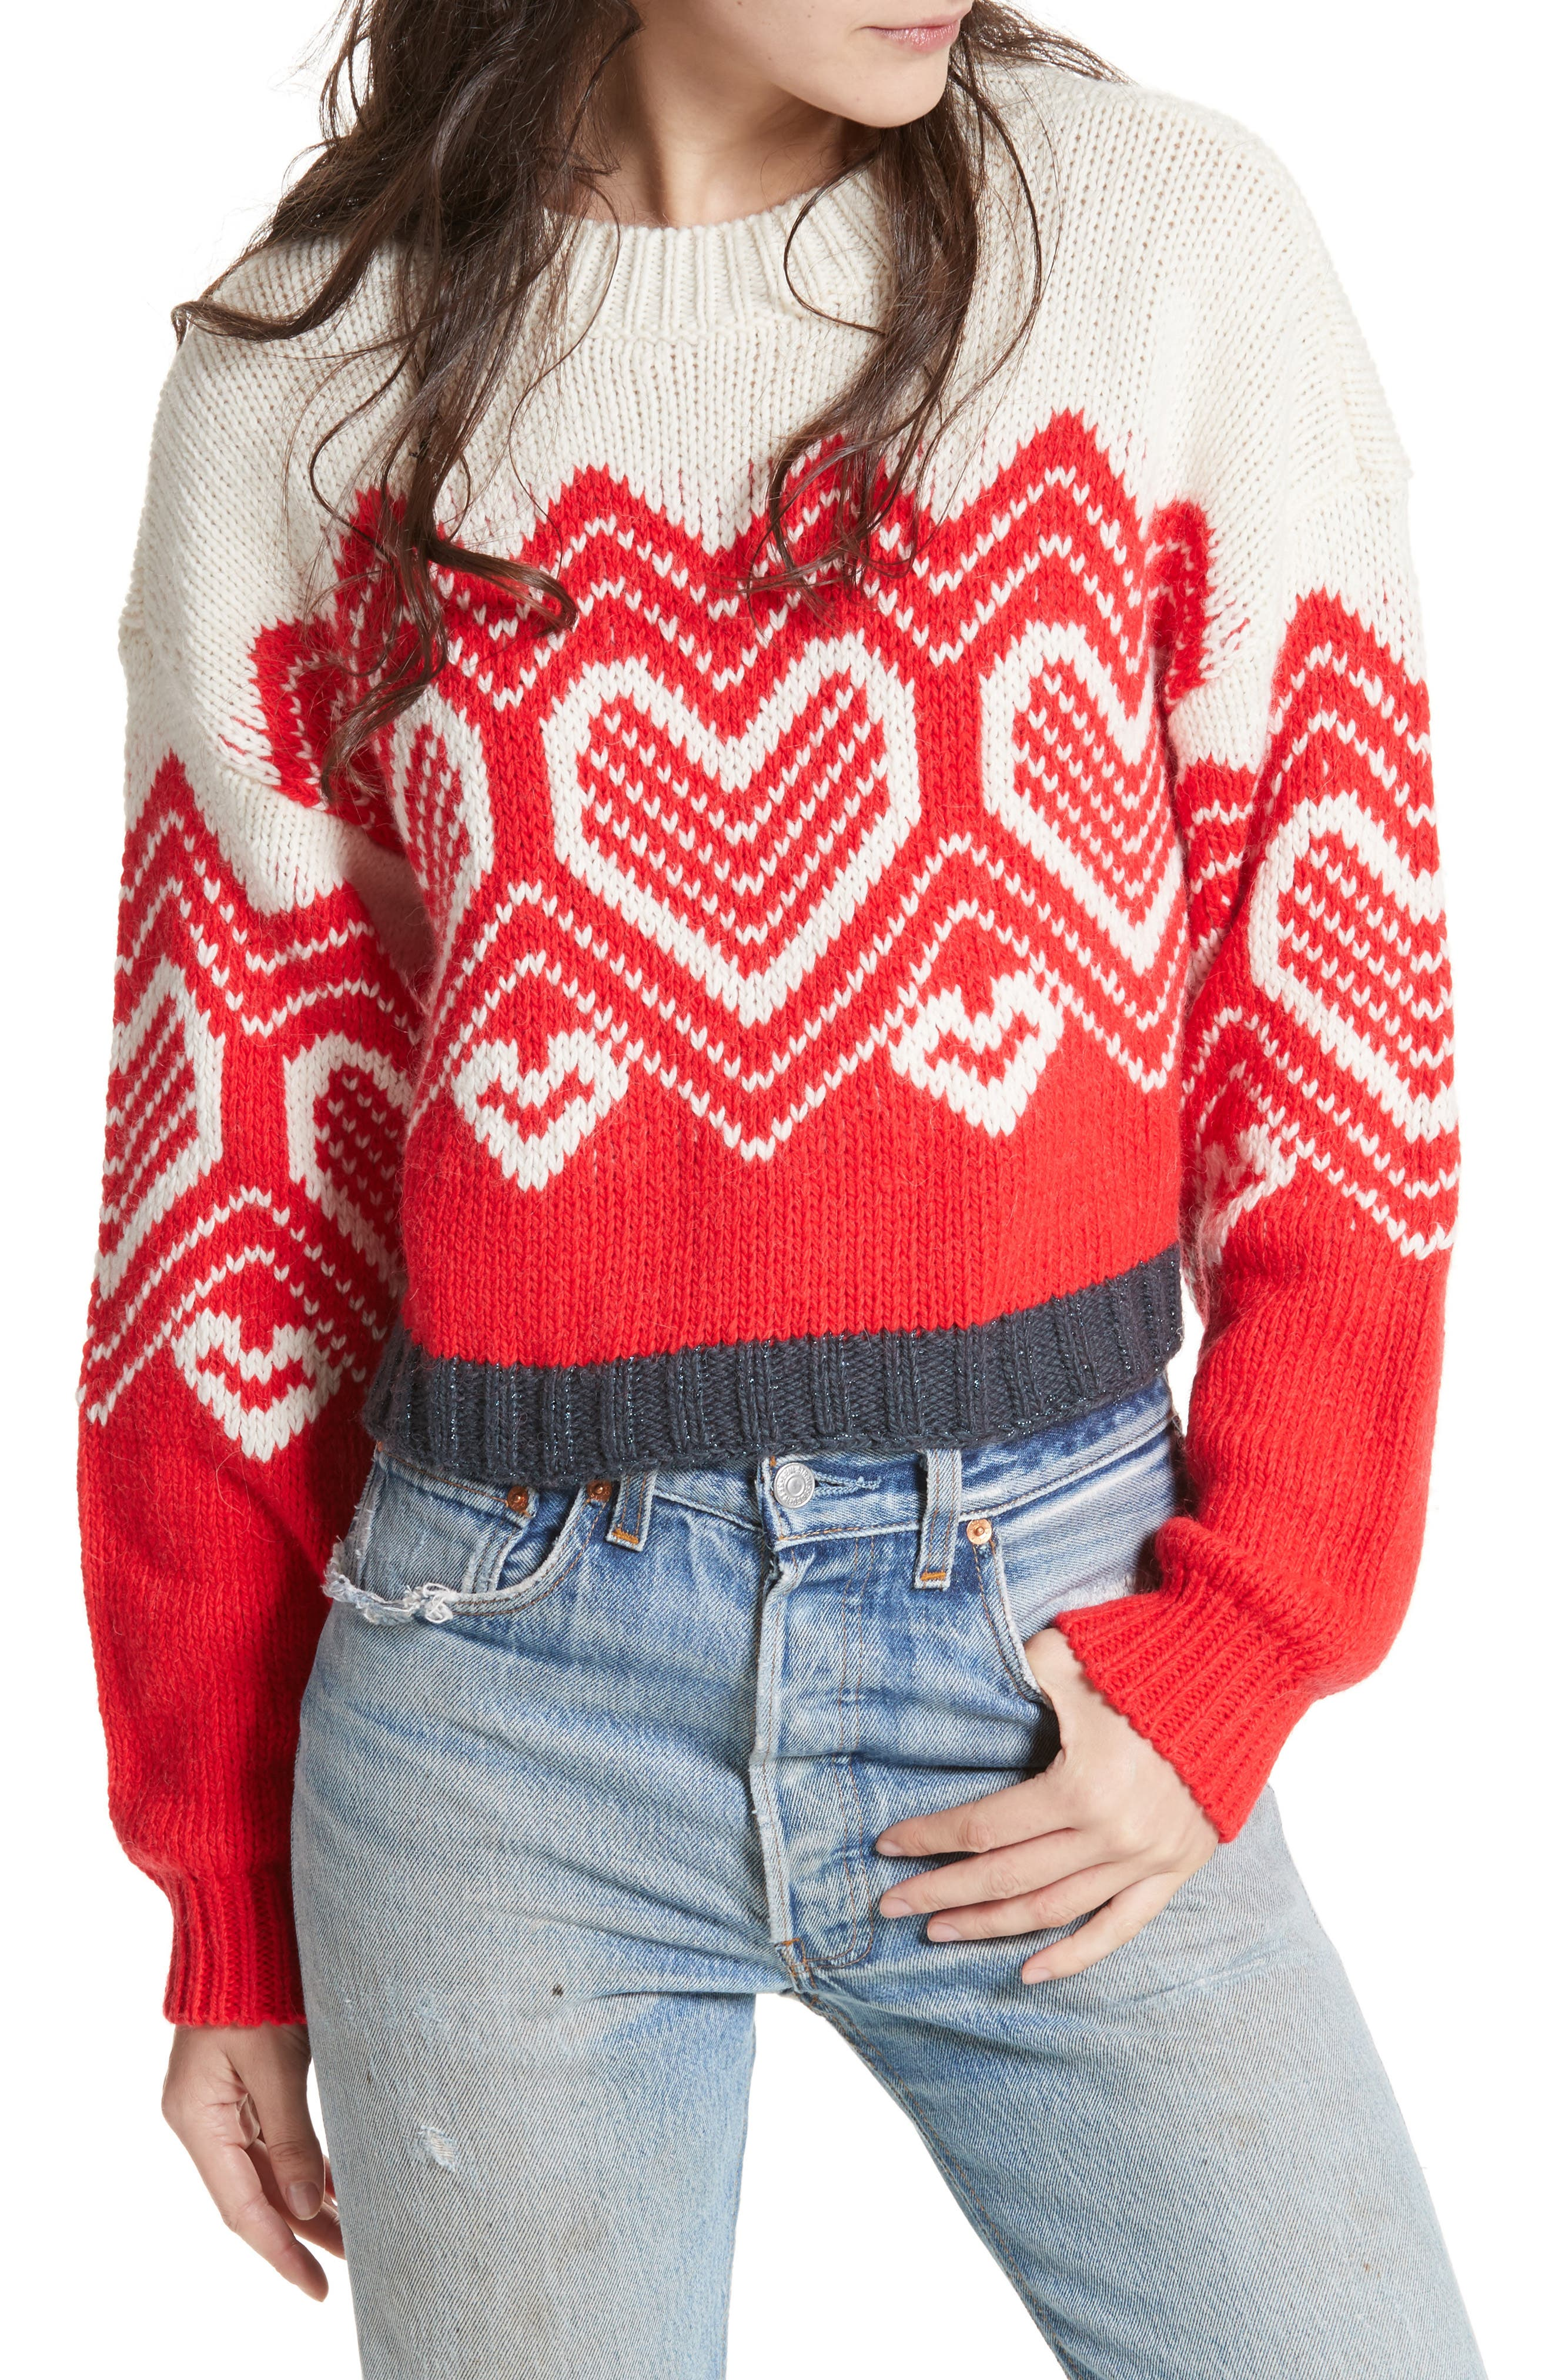 I Heart You Sweater,                         Main,                         color, Red Combo